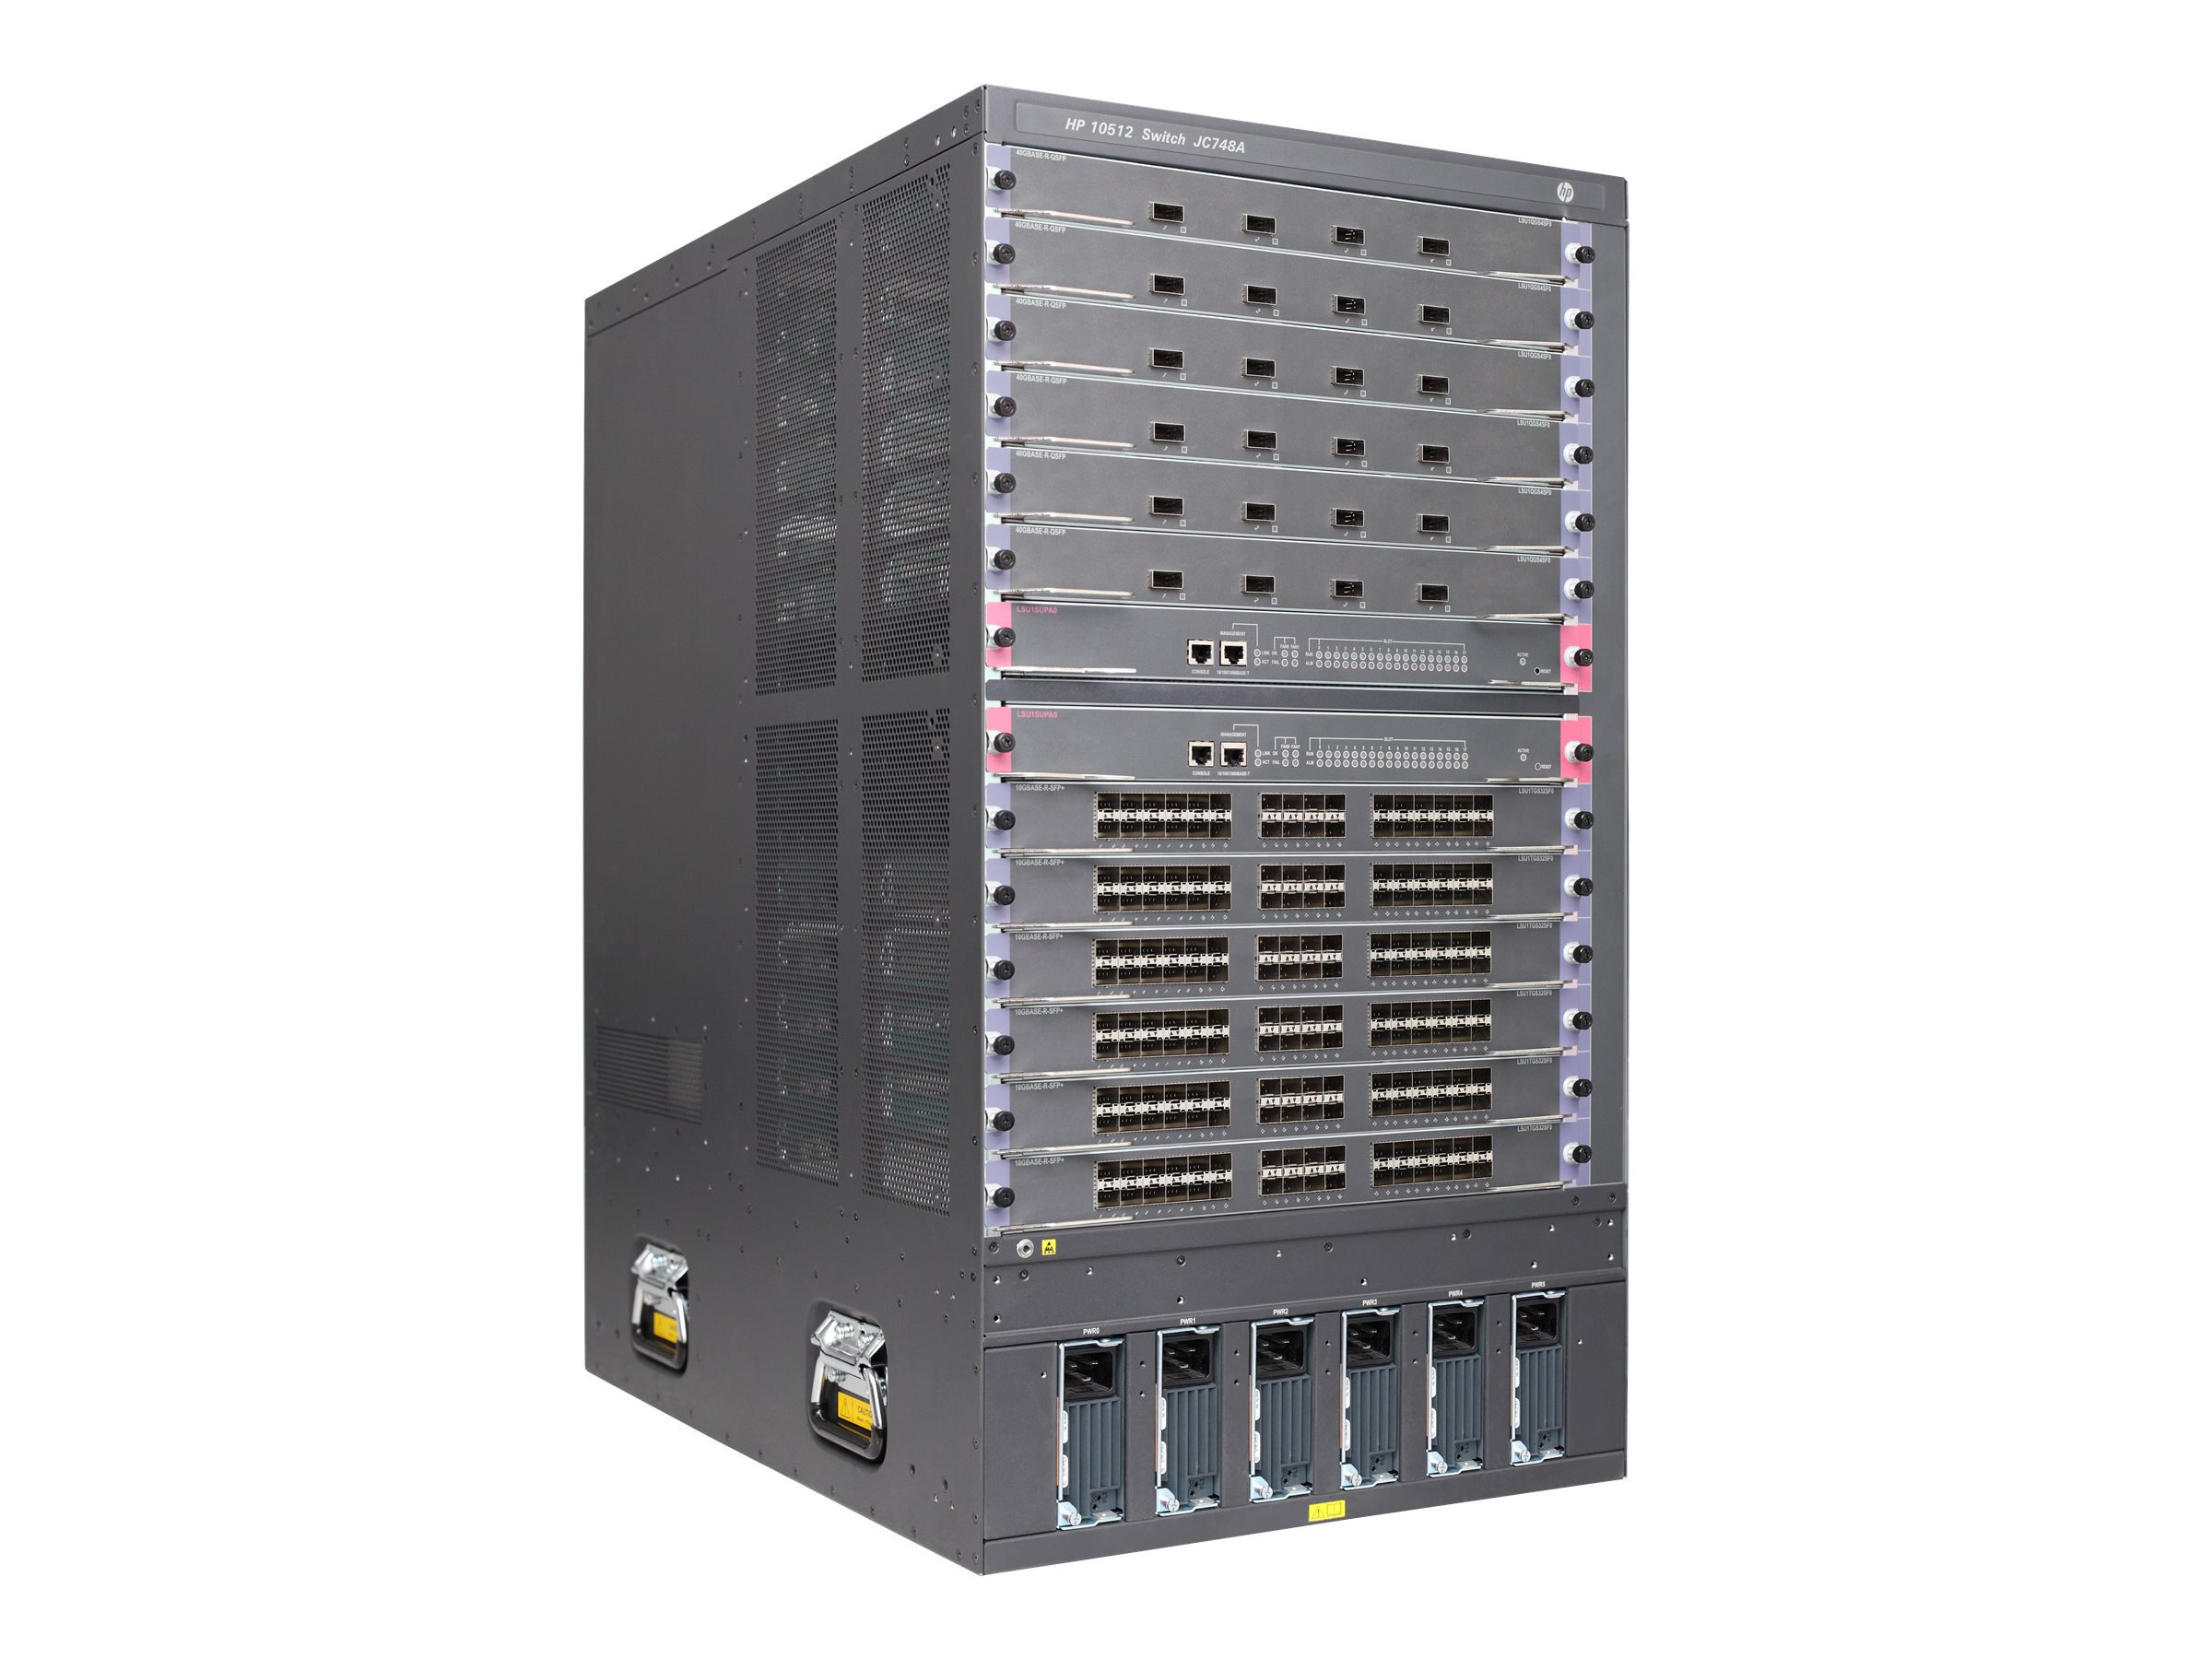 HPE 10512 Switch Chassis, JC748A, 14440509, Network Switches